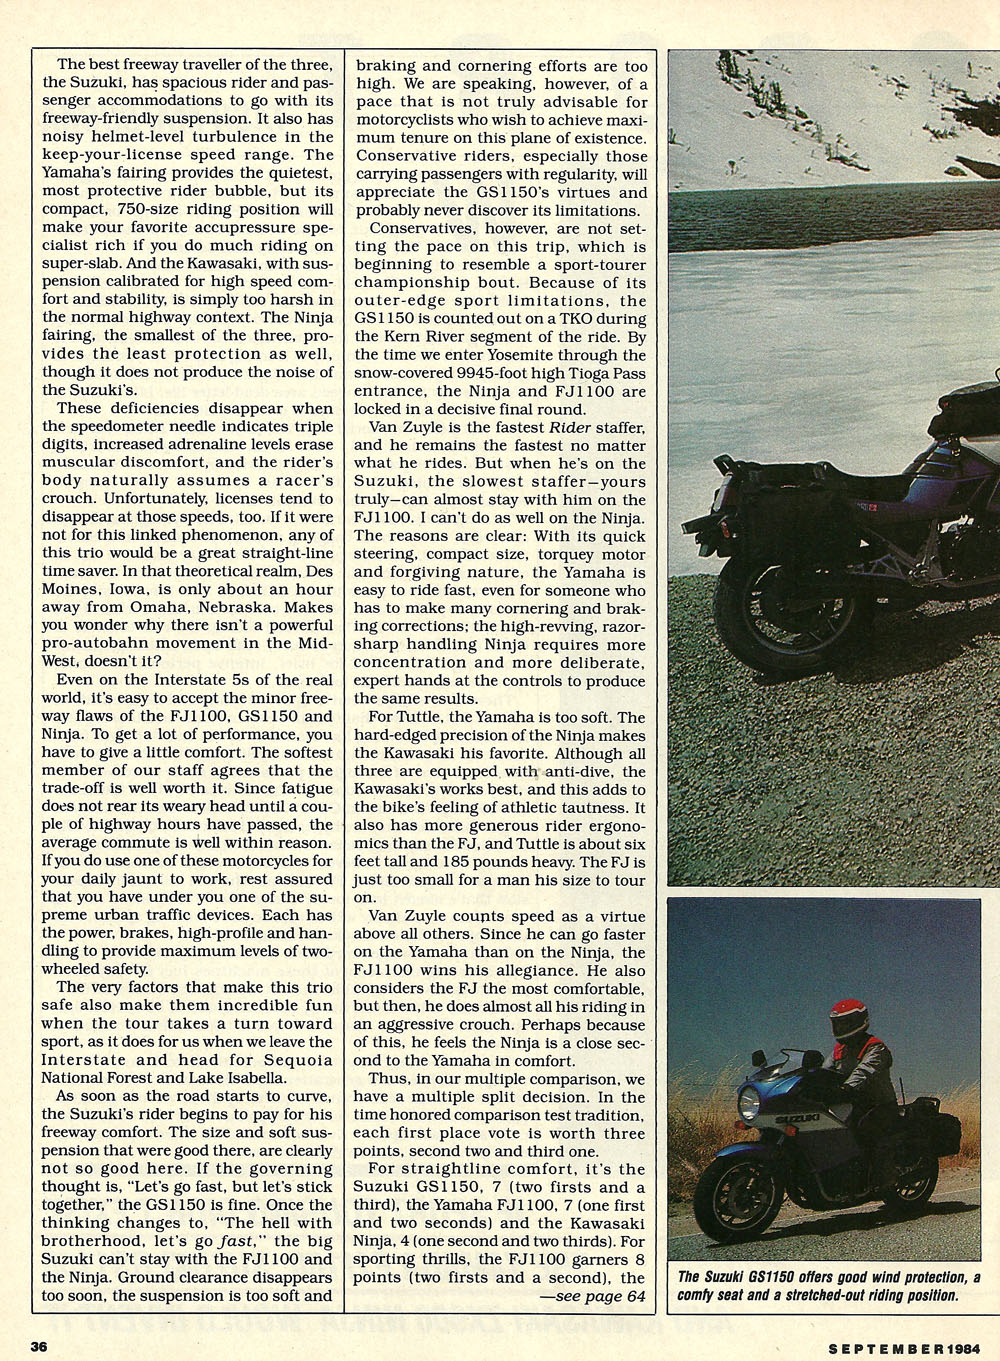 1984 fj1100 zx900 gs1150 road test 03.jpg